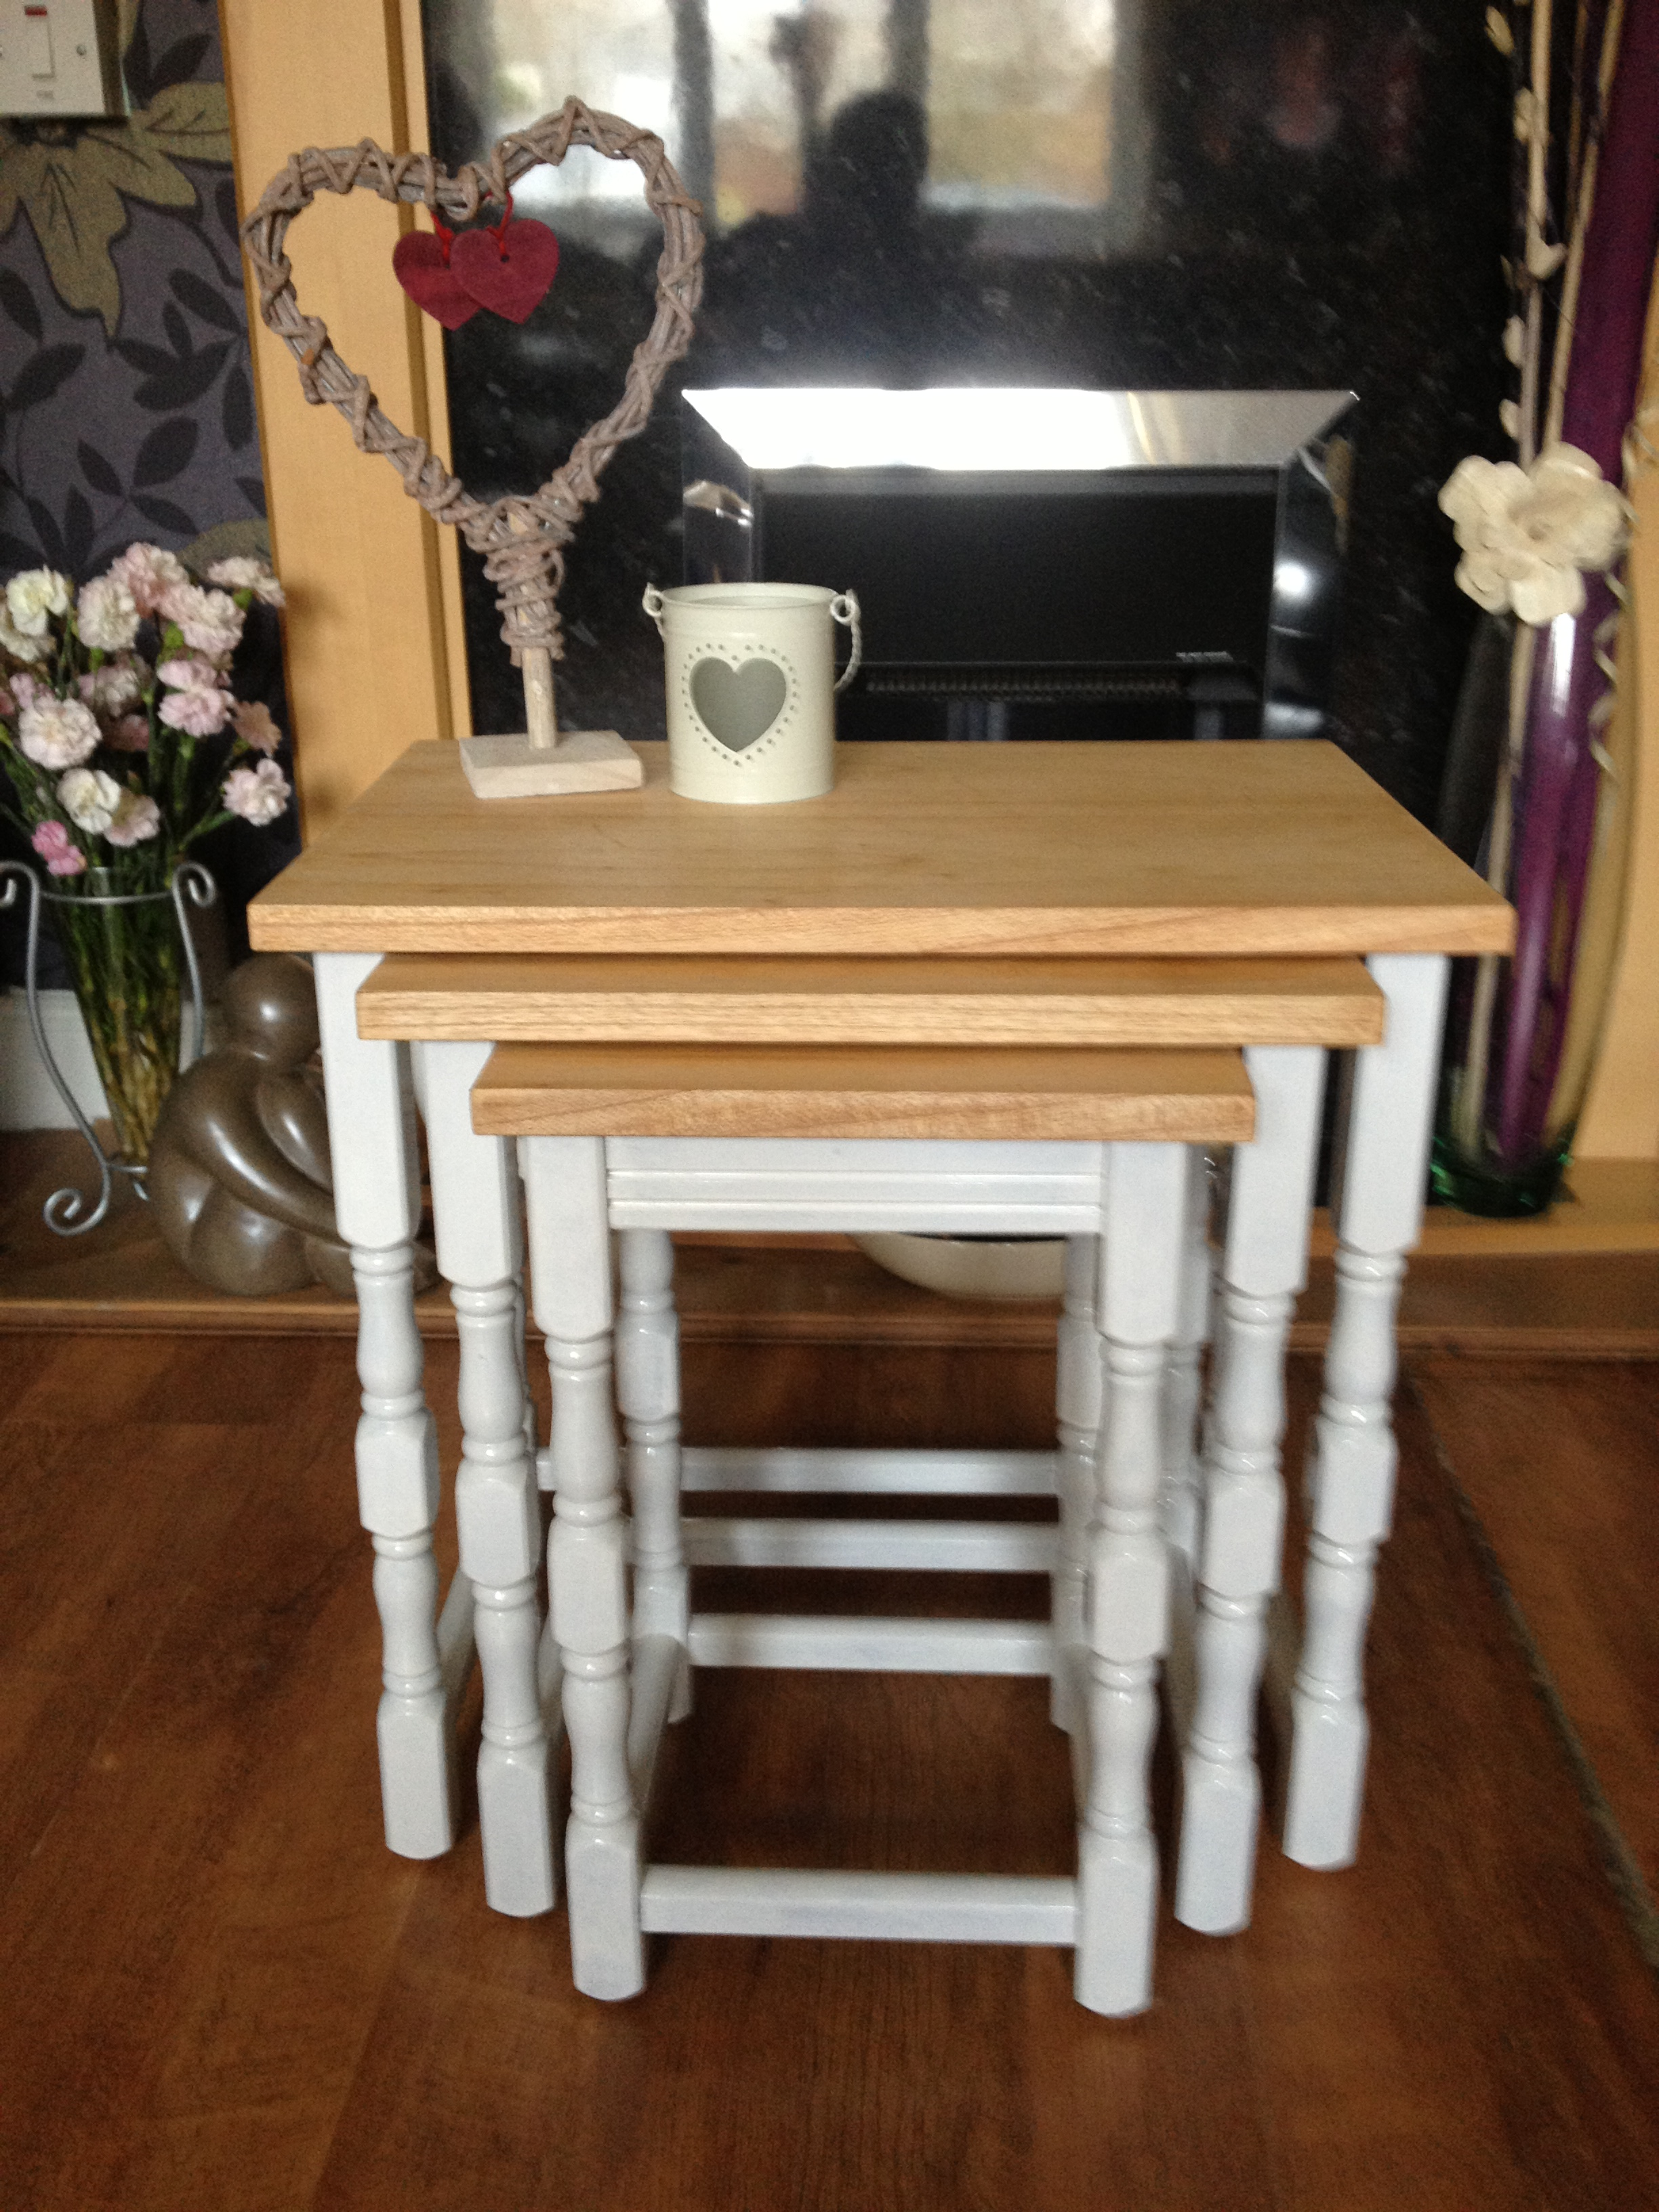 Second Hand Rose Handpainted Furniture